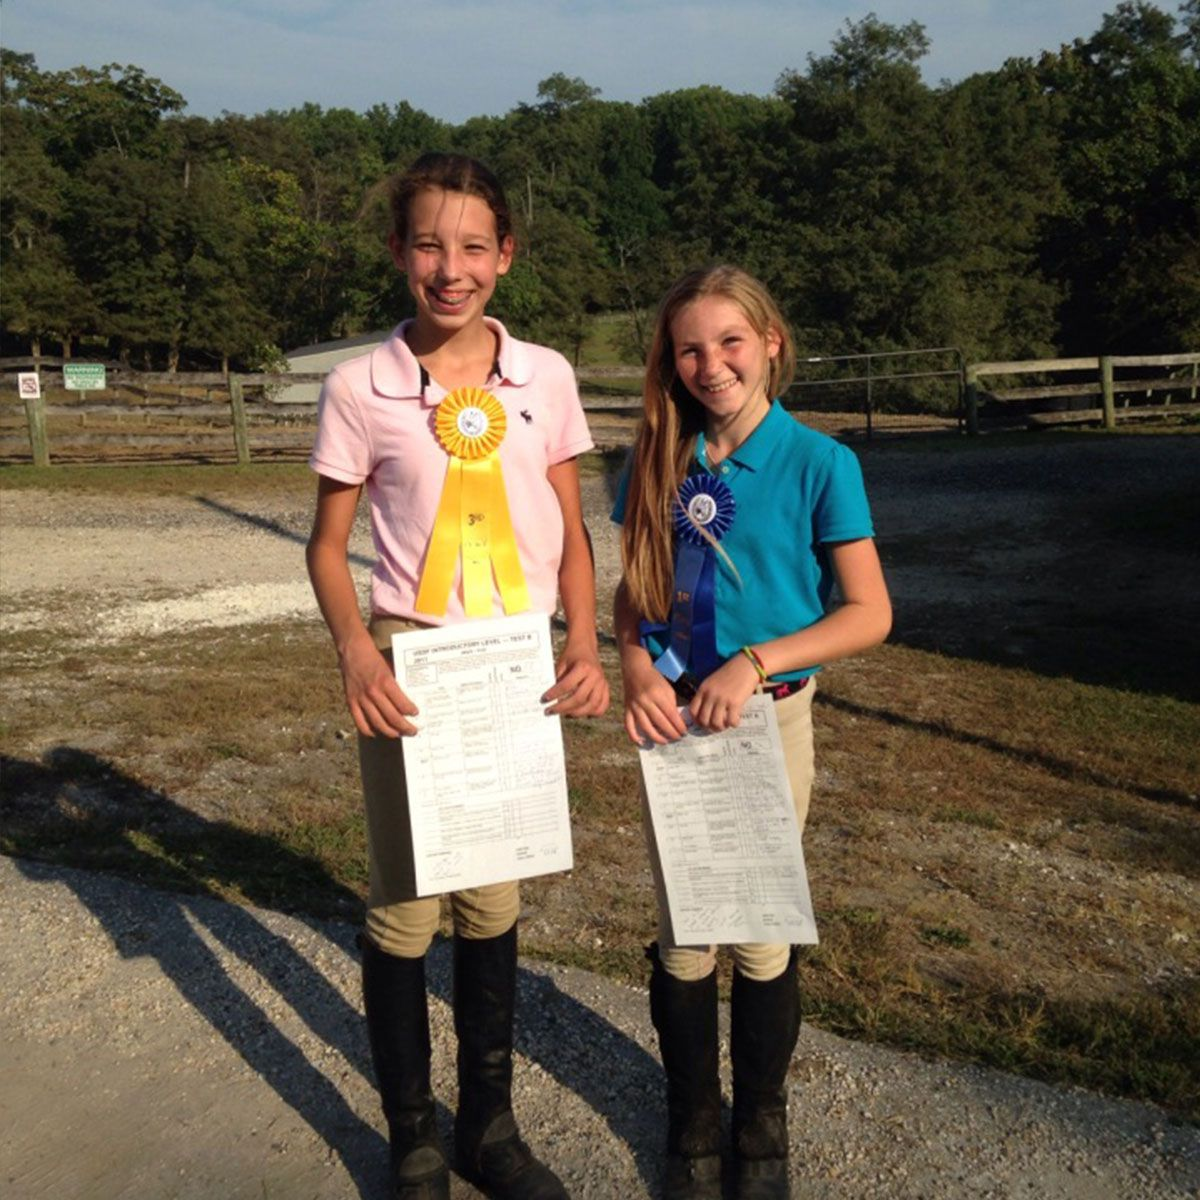 HORSE SHOWS & EVENTS